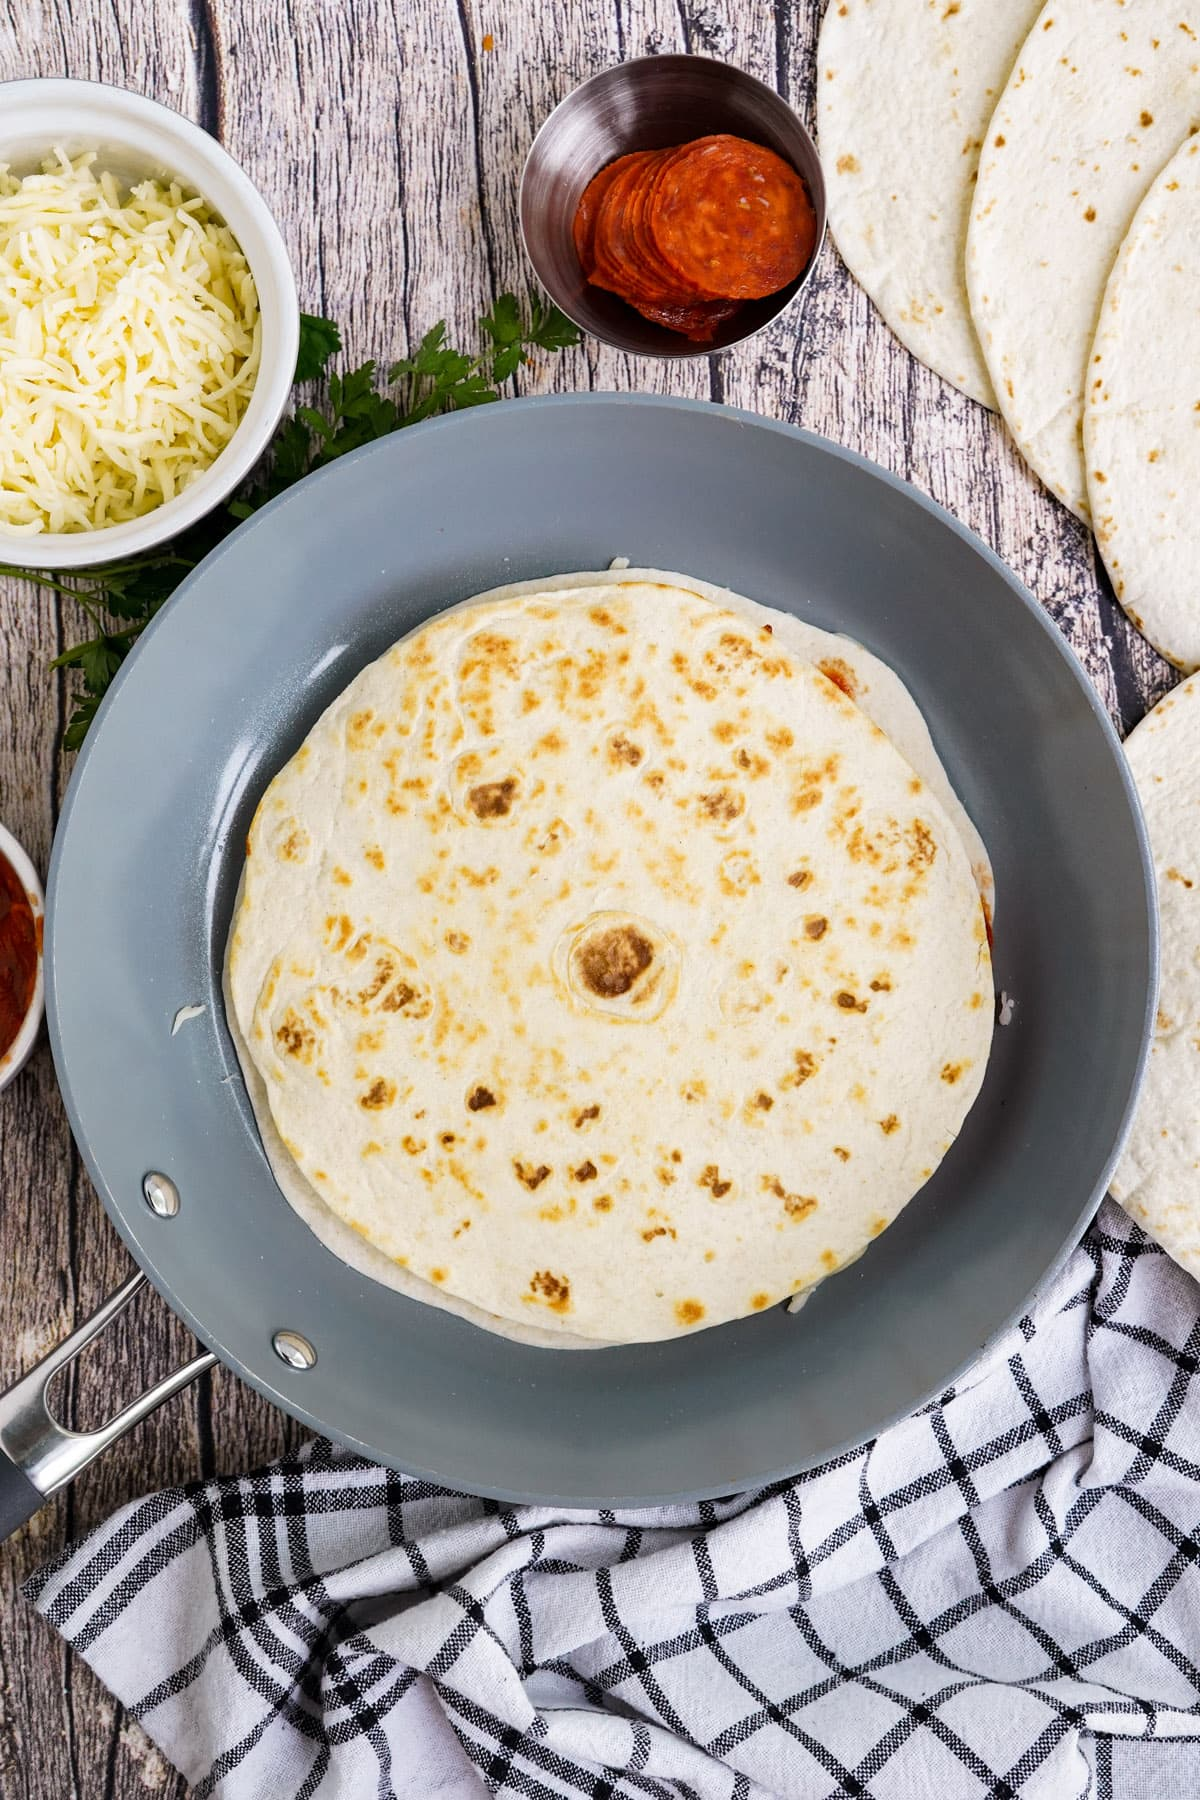 top with a second tortilla